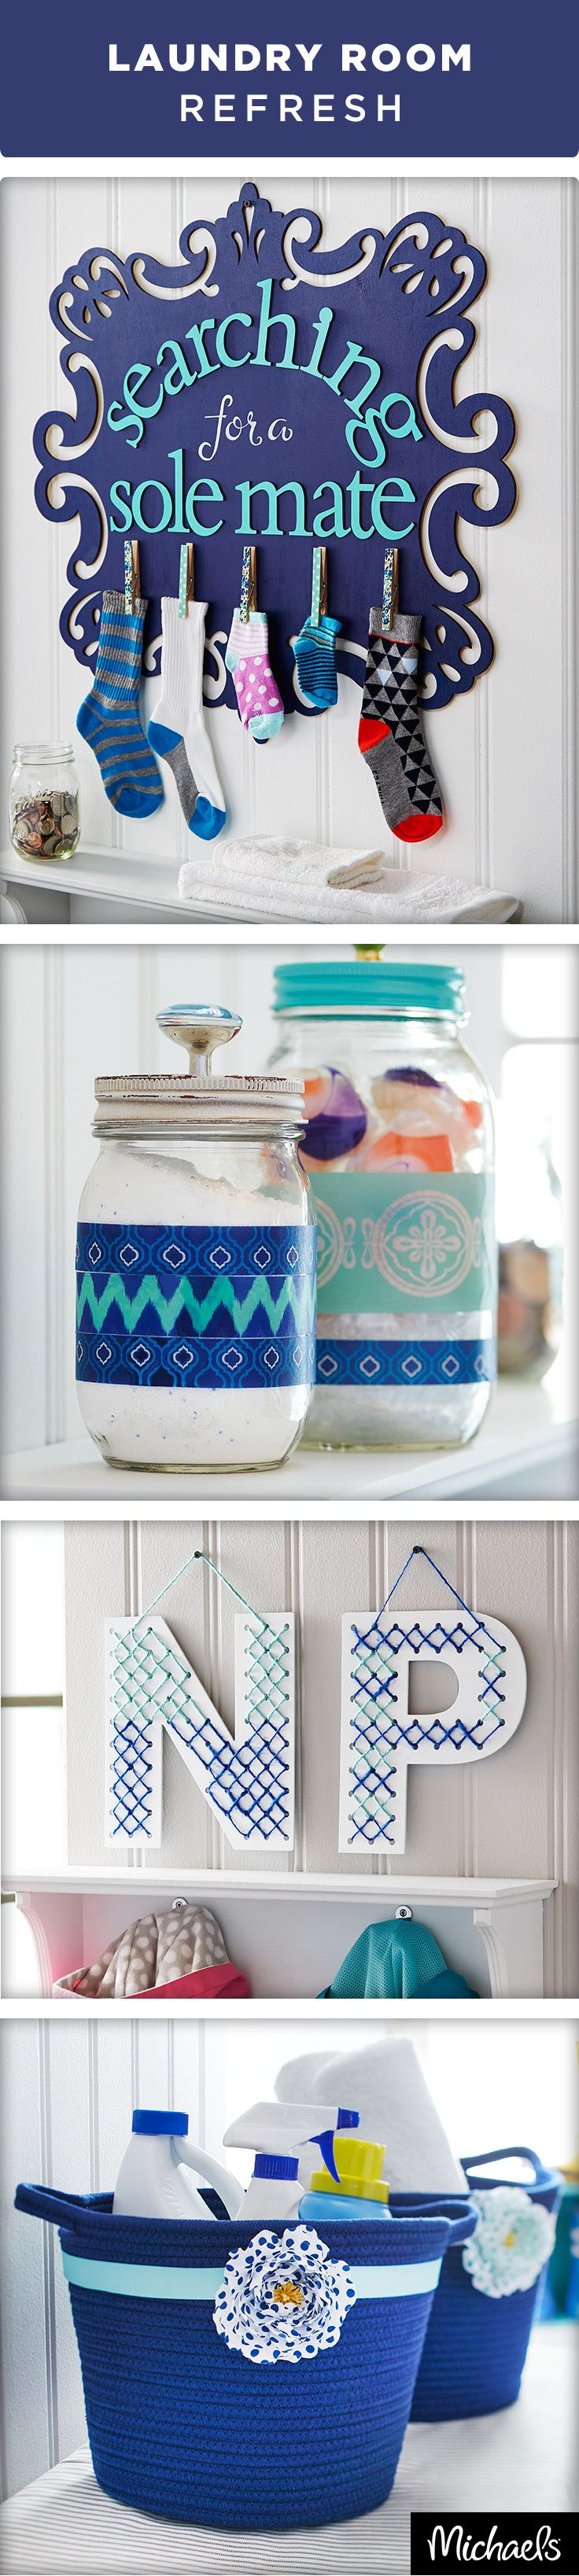 Refresh your laundry room with these fresh and clean DIY projects! Keep soap and detergents organized with rope baskets and decorate mason jars. Pair up lost mates with the help of this missing sock organizer. Get everything you need to make these projects at your local Michaels store.